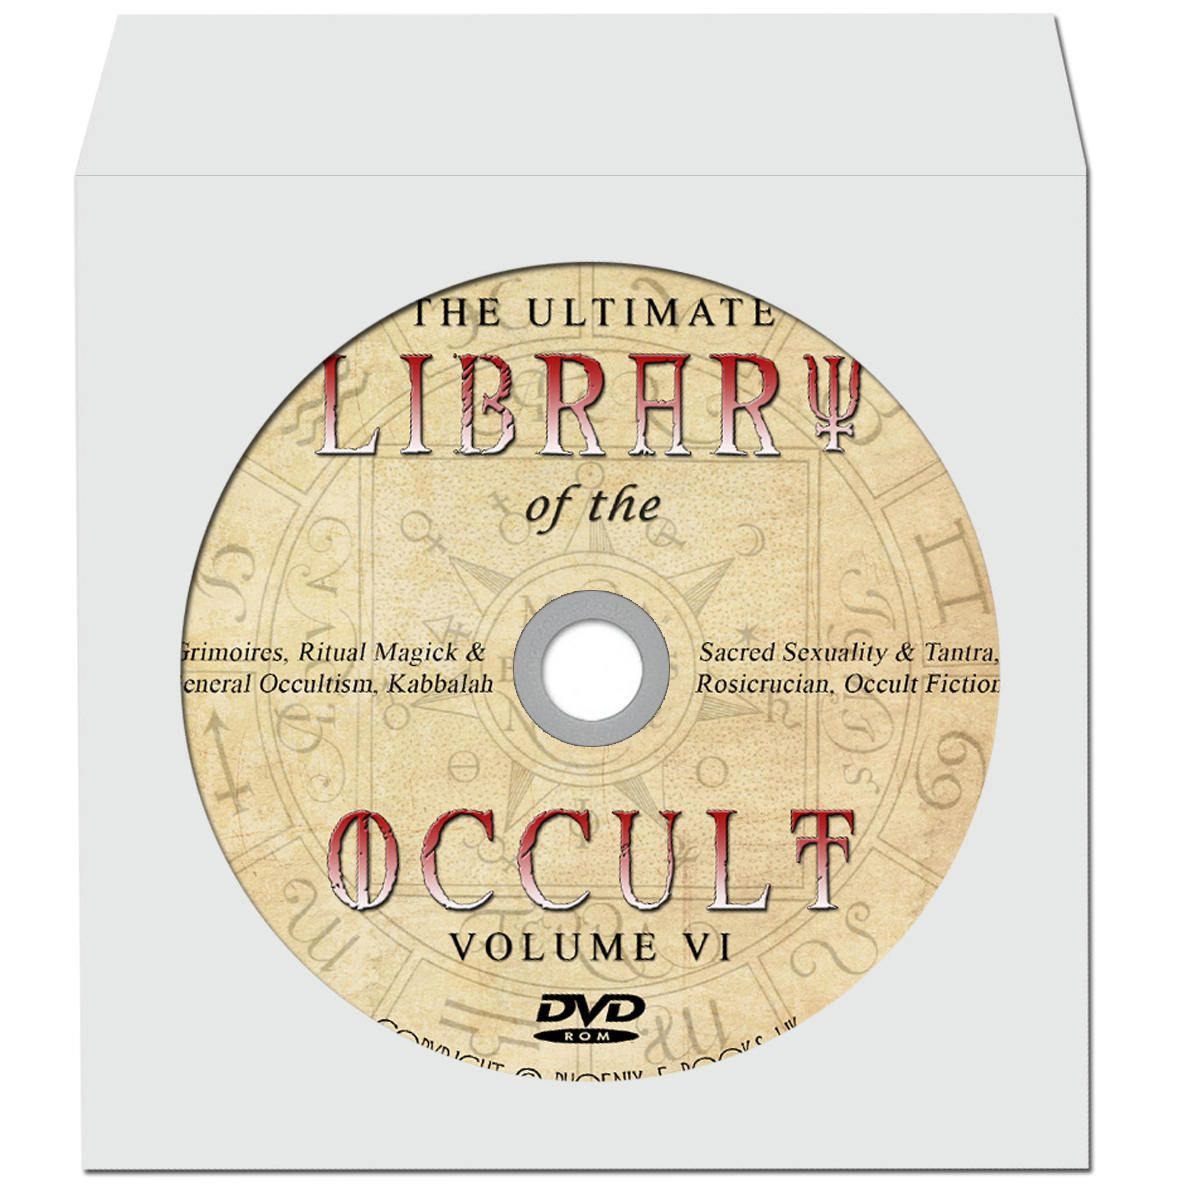 LIBRARY of the OCCULT 2700 Rare Vintage books pdf 8 DVD-Roms